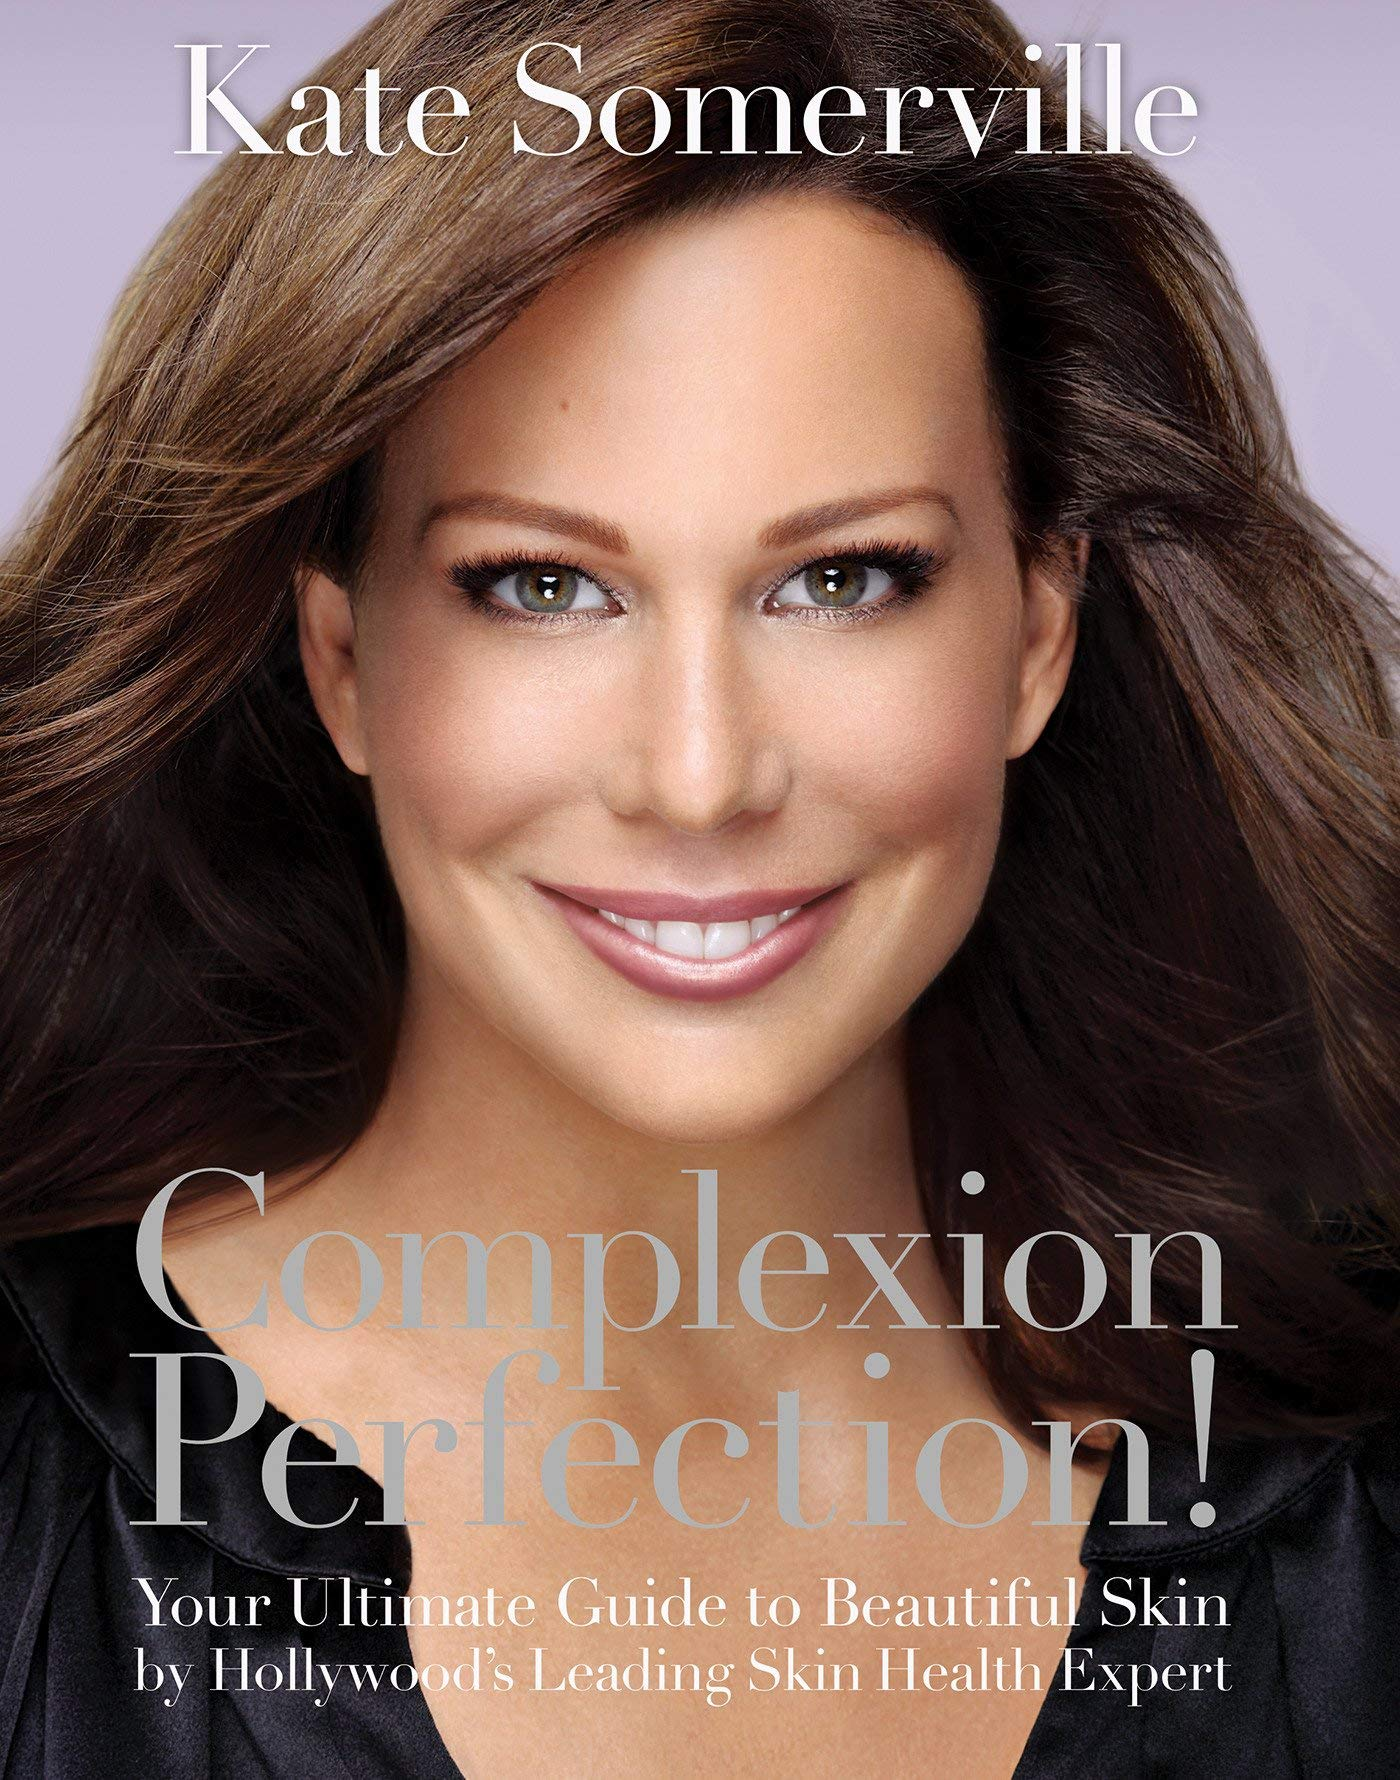 Kate somerville complexion perfection